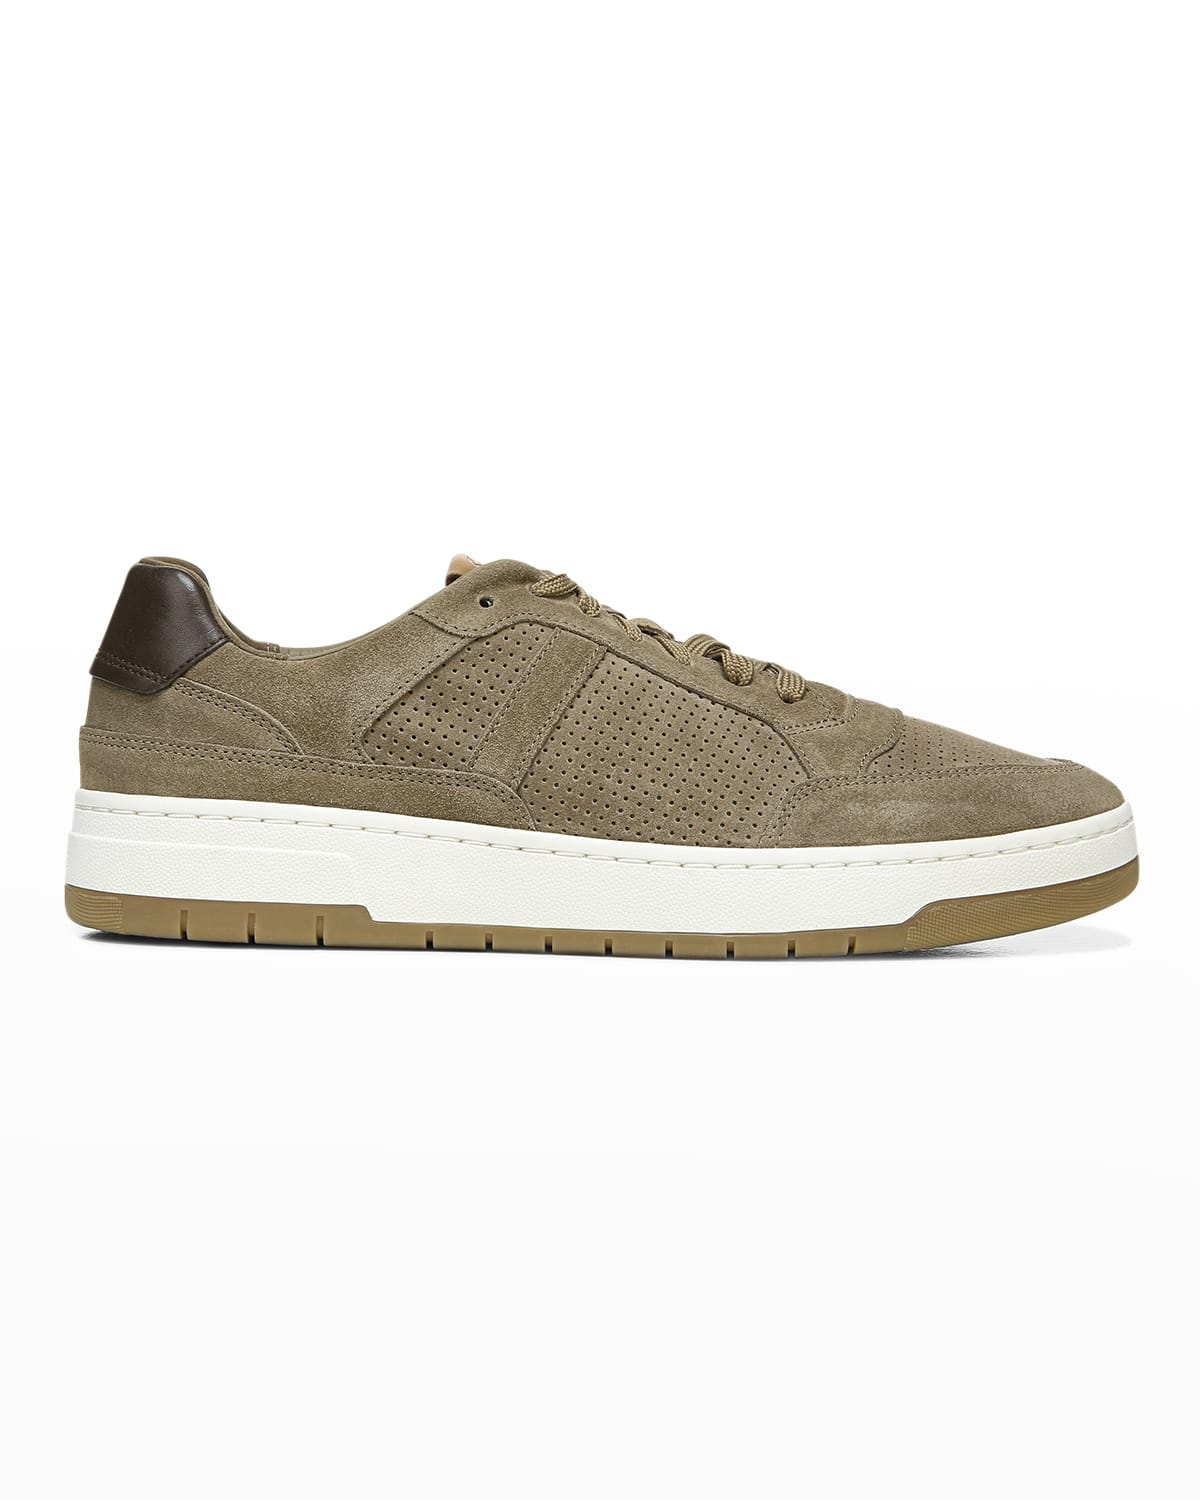 Men's Mason Perforated Suede Low-Top Sneakers